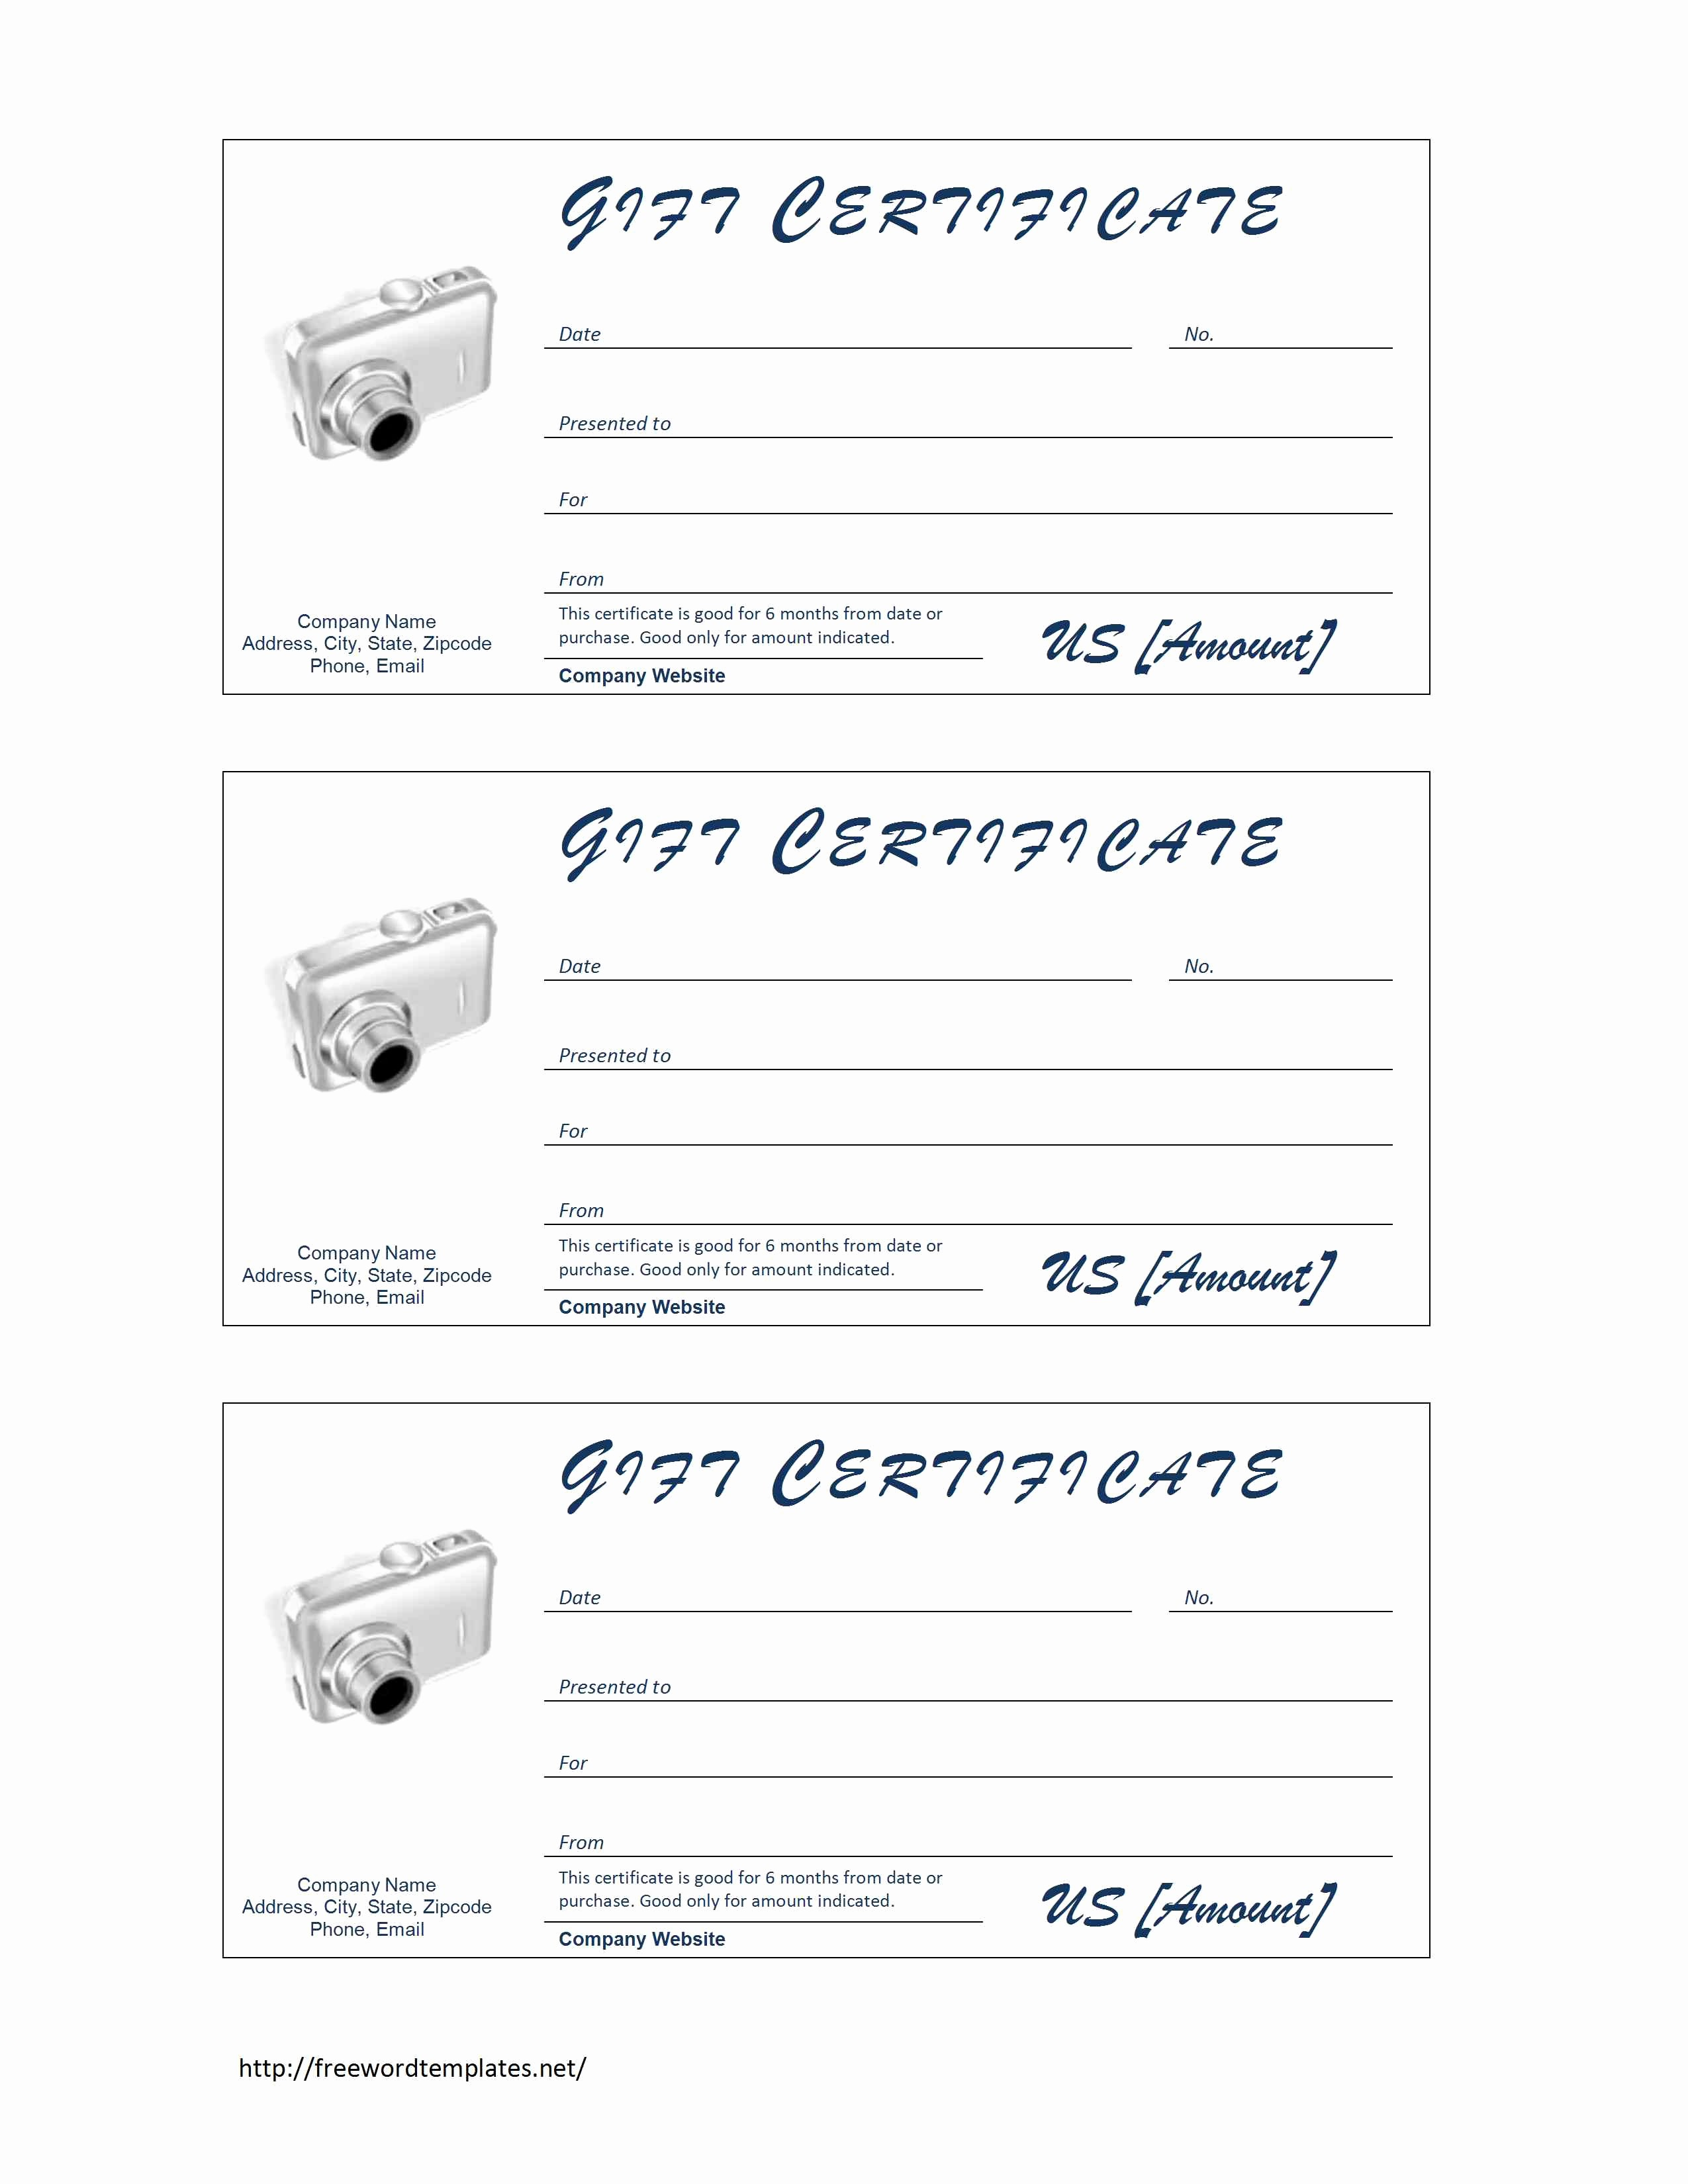 Blank Certificate Templates for Word Best Of Blank Gift Certificate Template Mughals